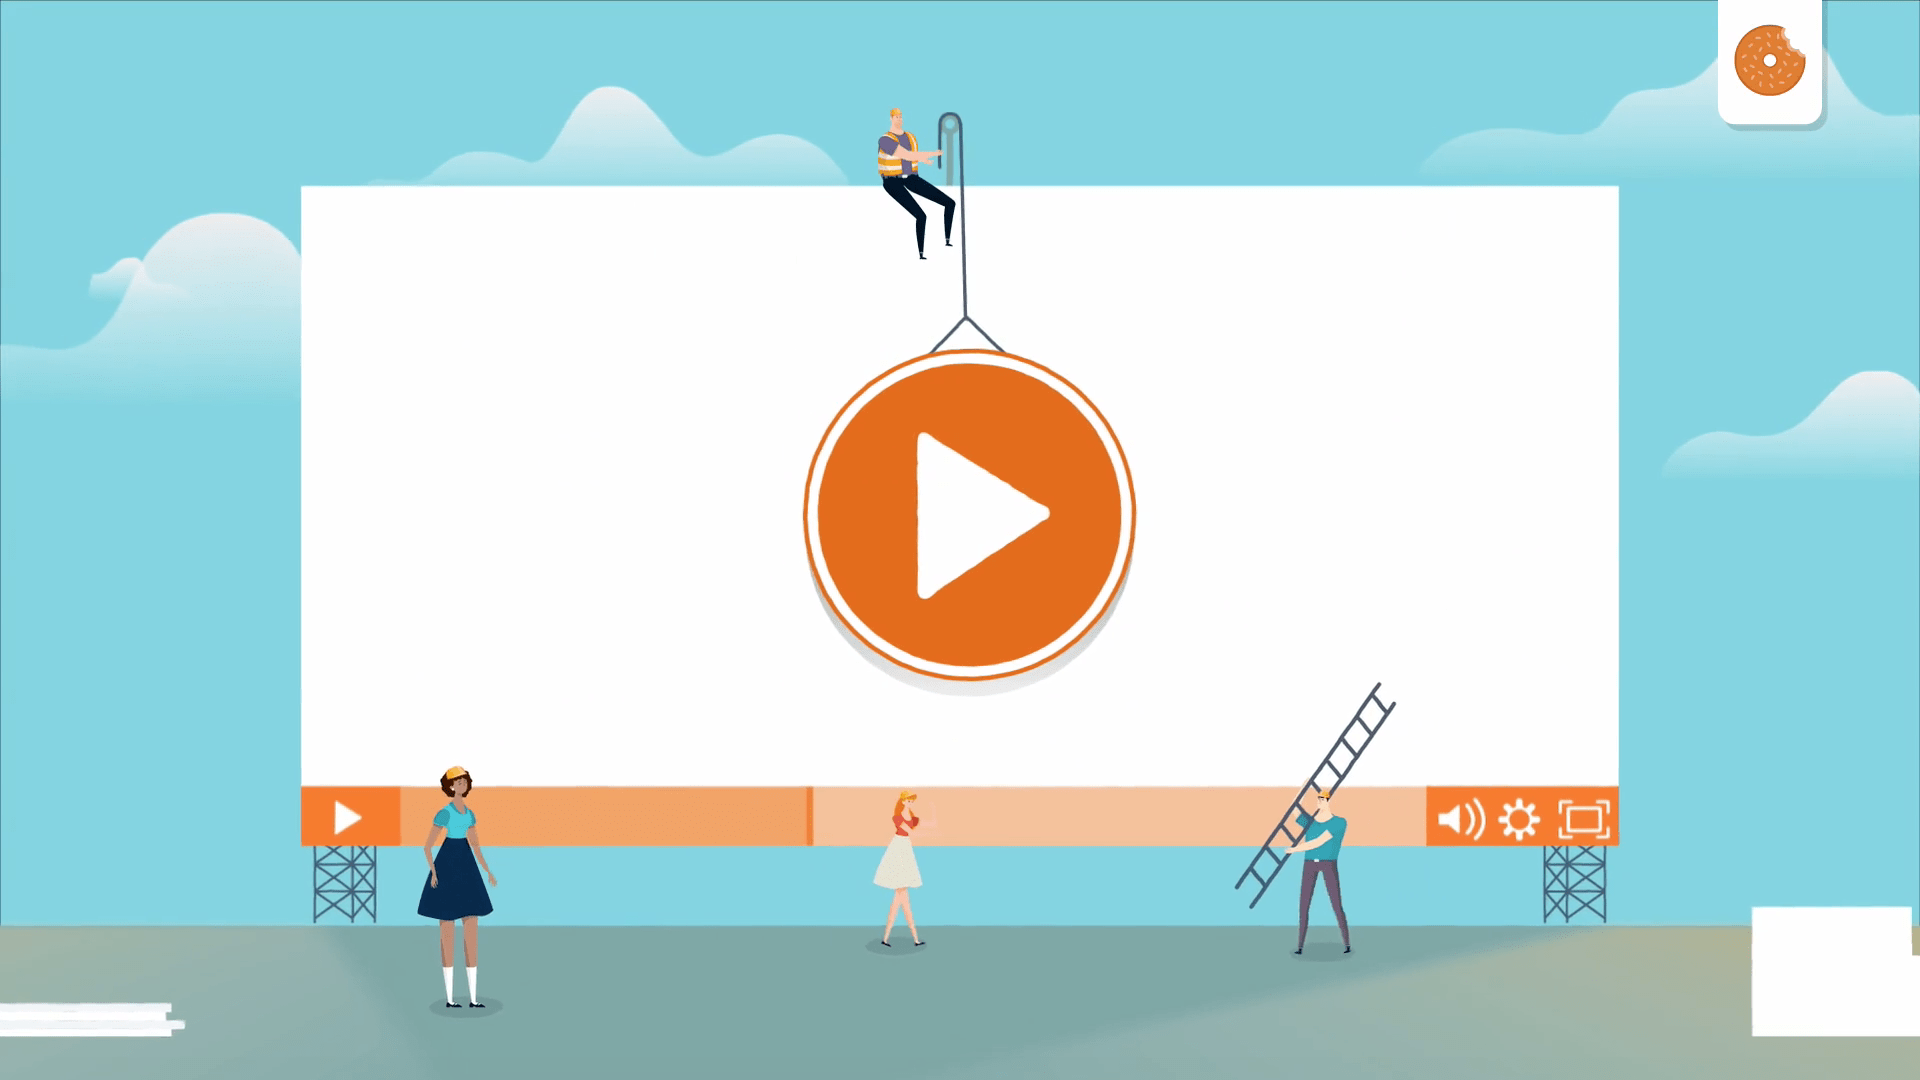 Make a Promo Video to Promote Your Business!